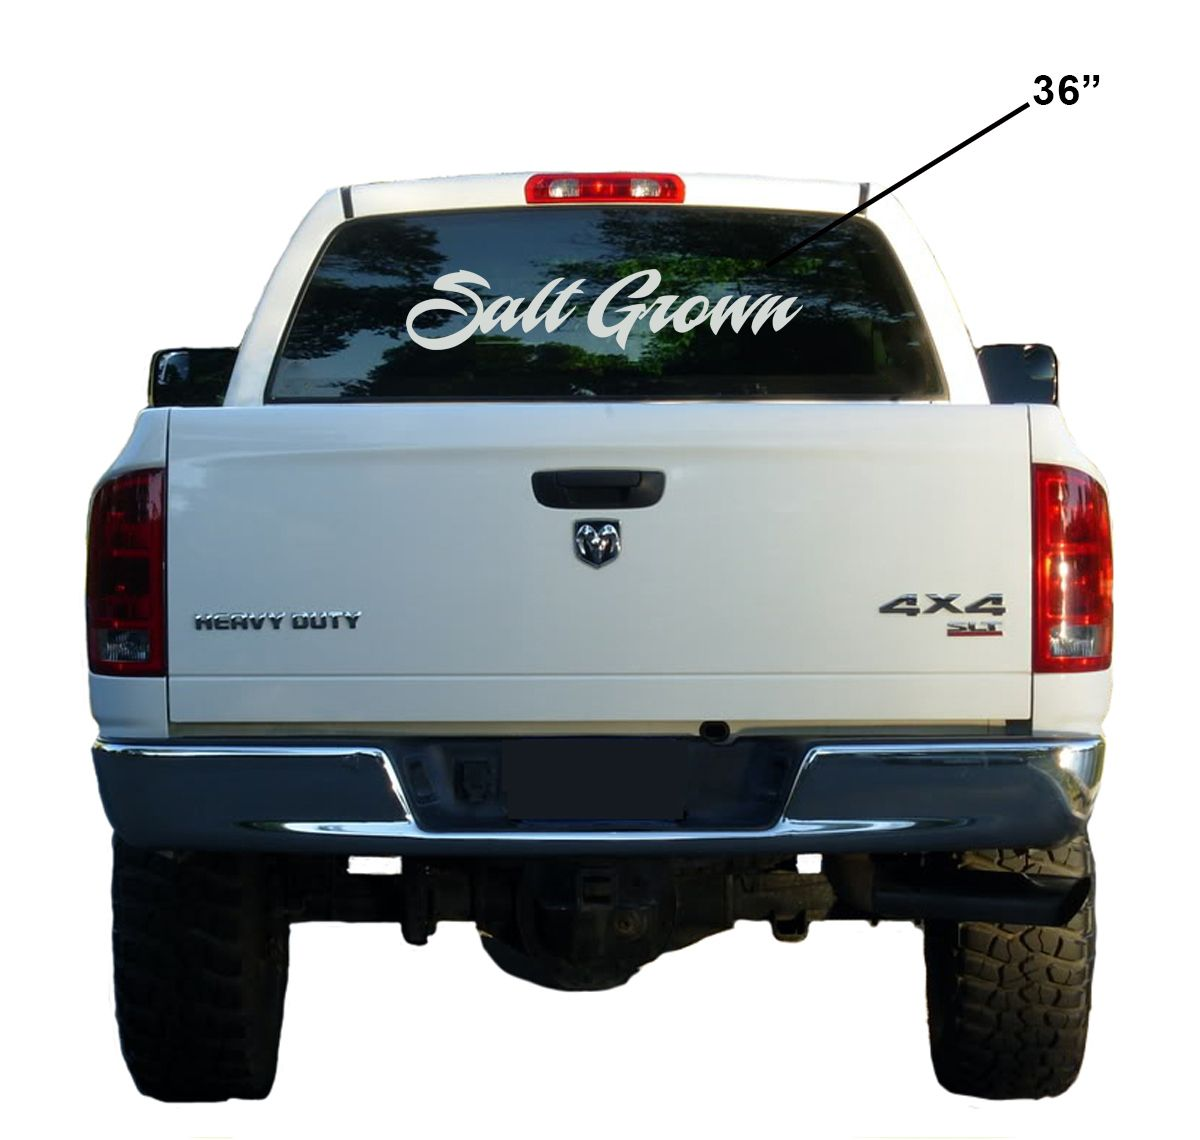 Salt Grown Brand Dolphin mahi window decal saltwater fishing sticker flats life